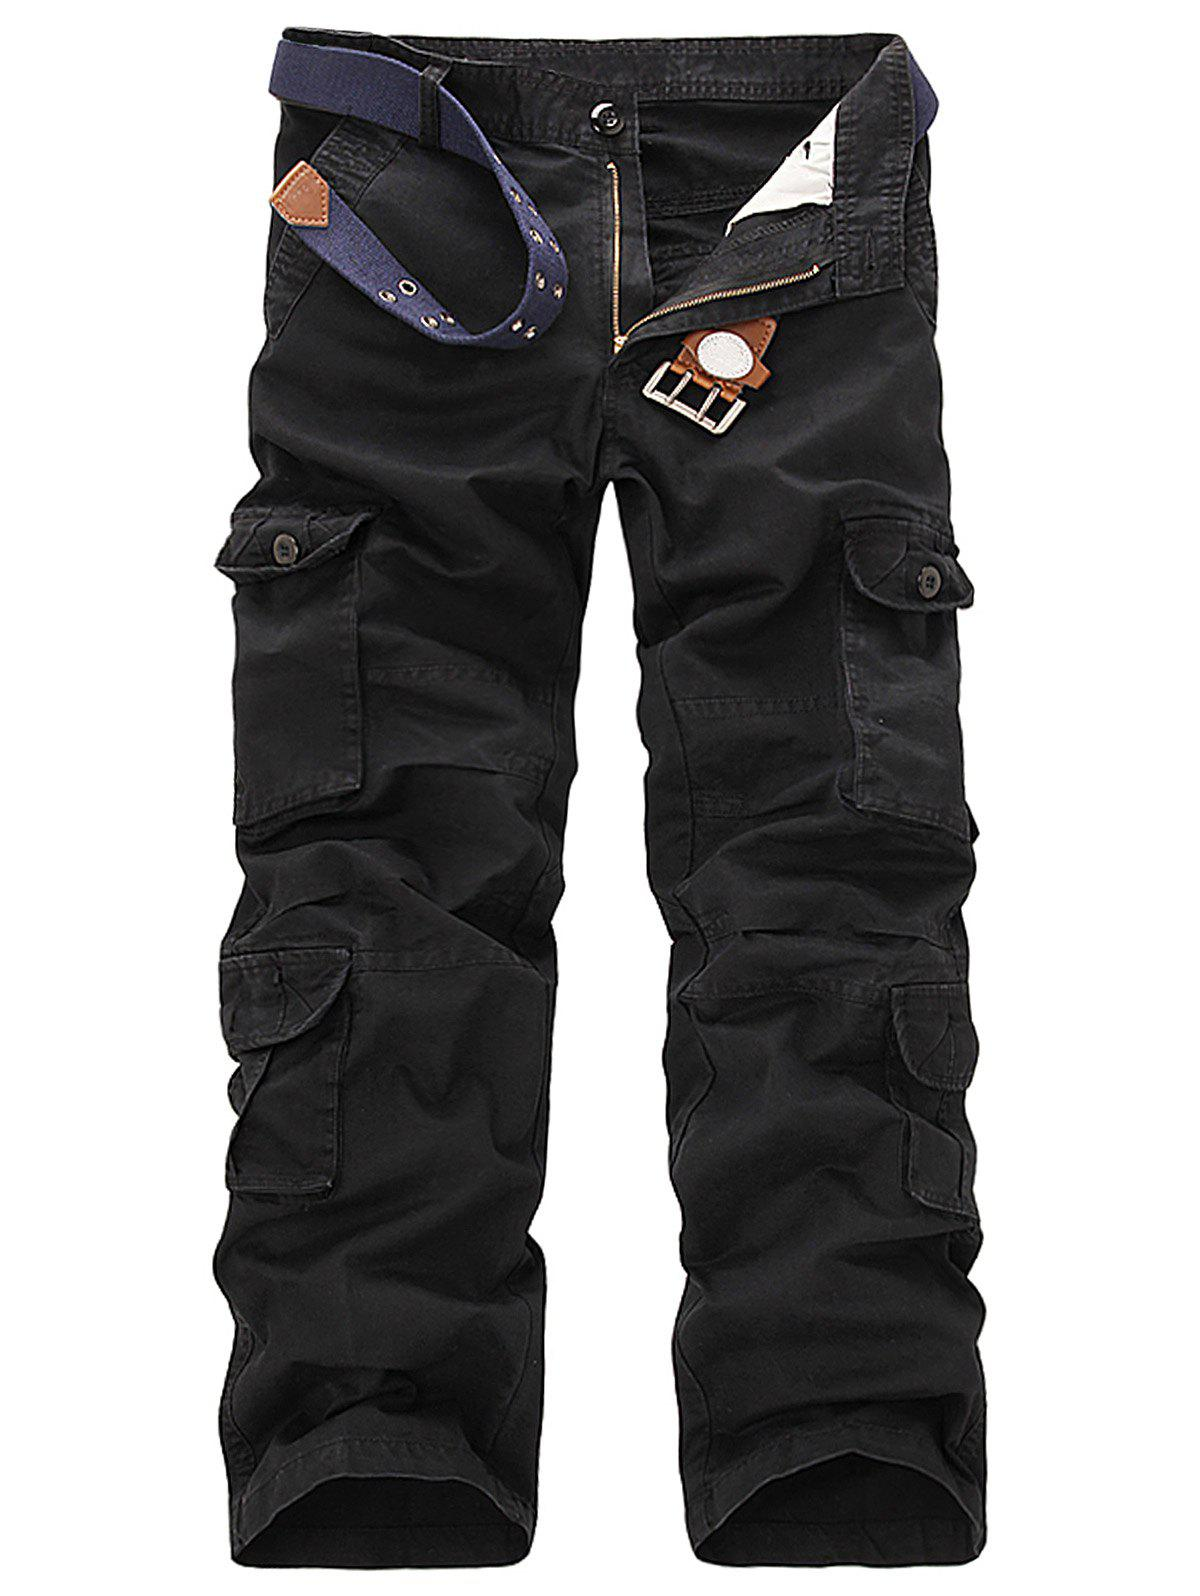 Slimming Pockets Design Cargo Pants - BLACK 34